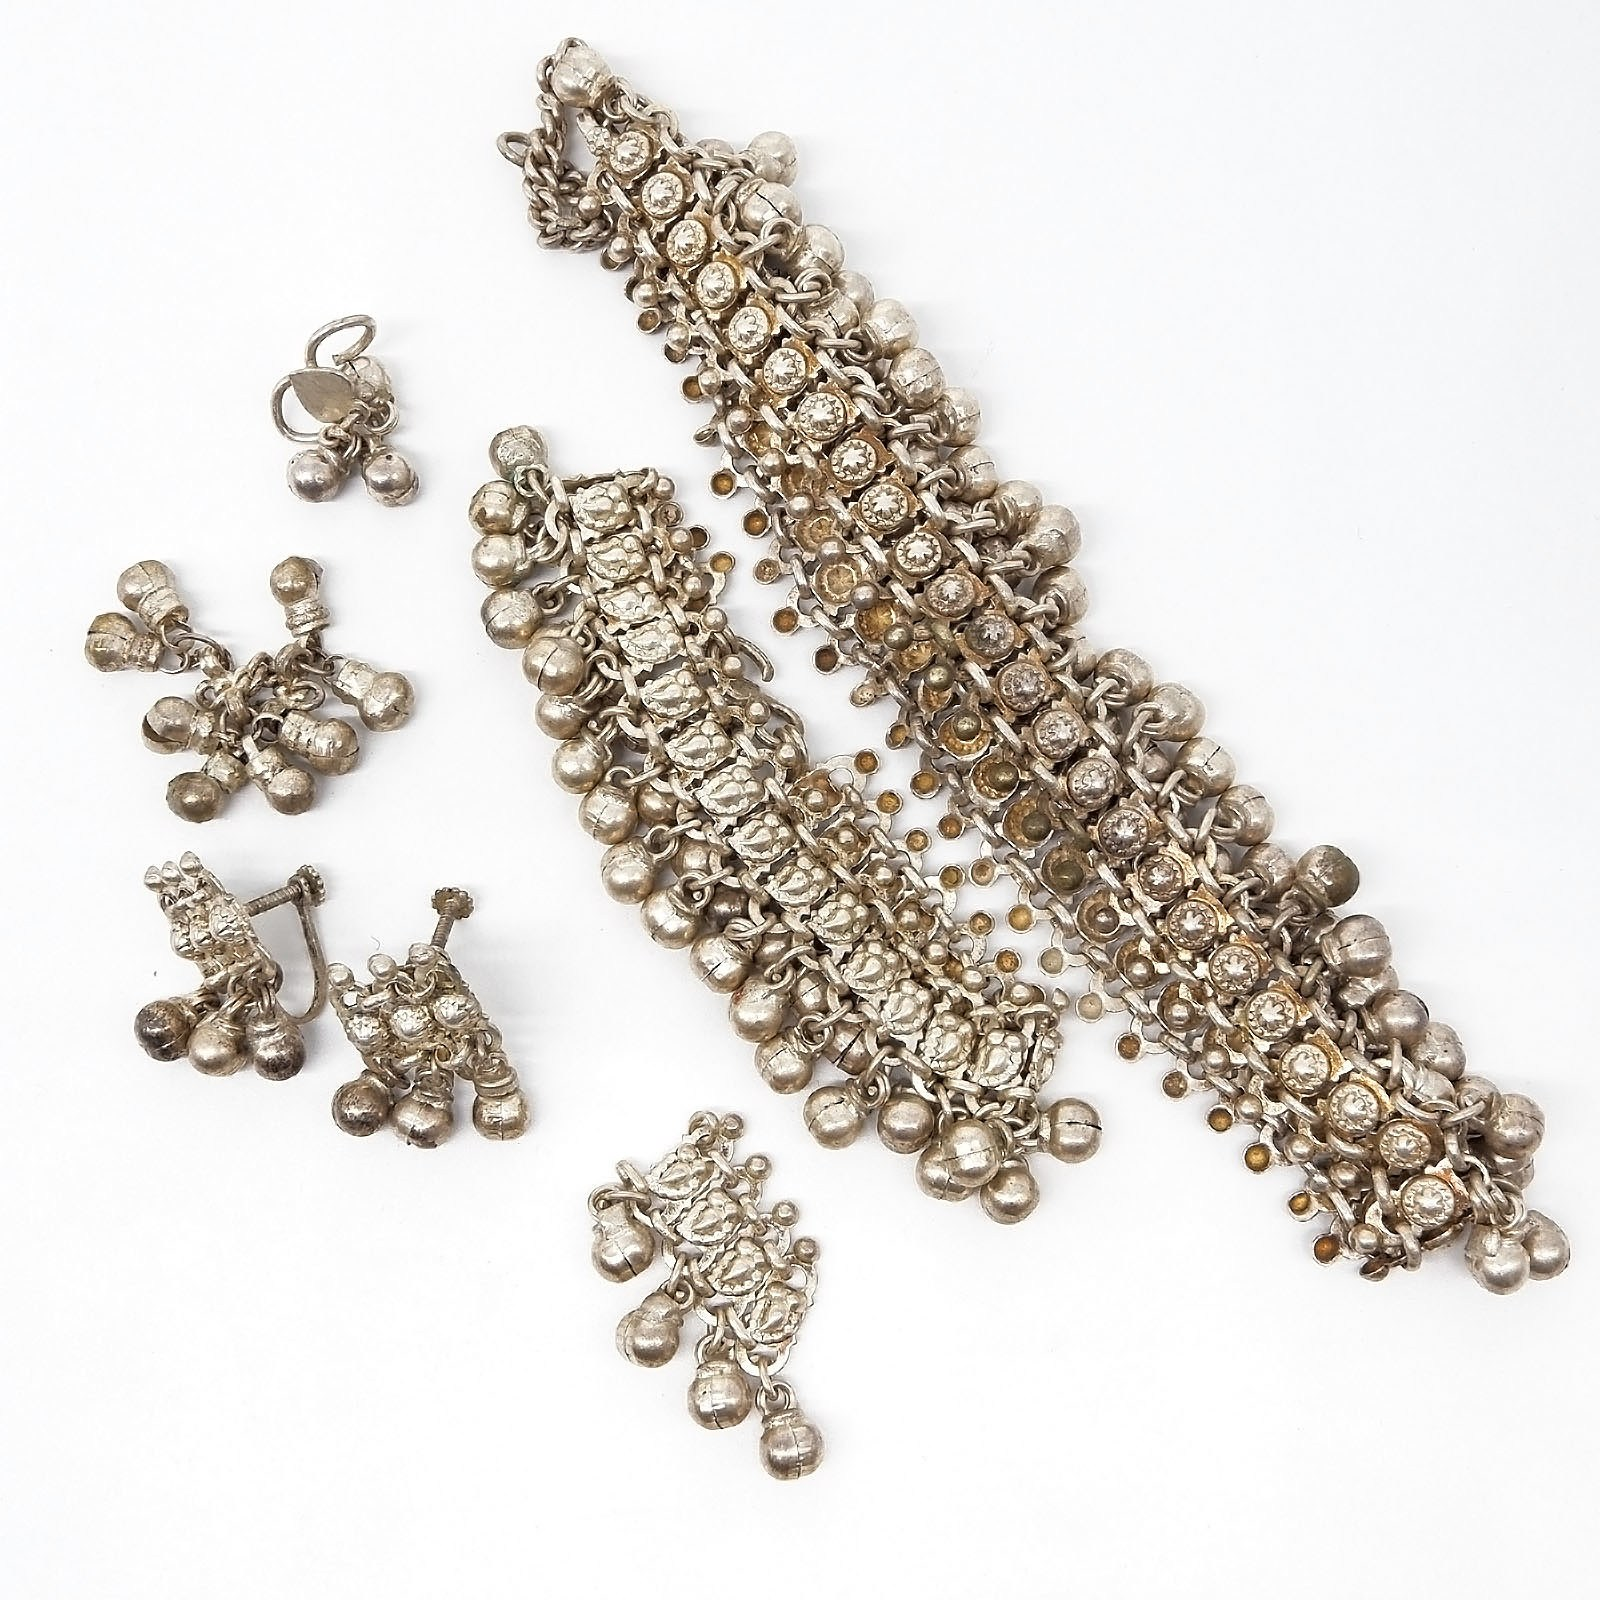 'Group of Indian Silver Metal Jewellery'